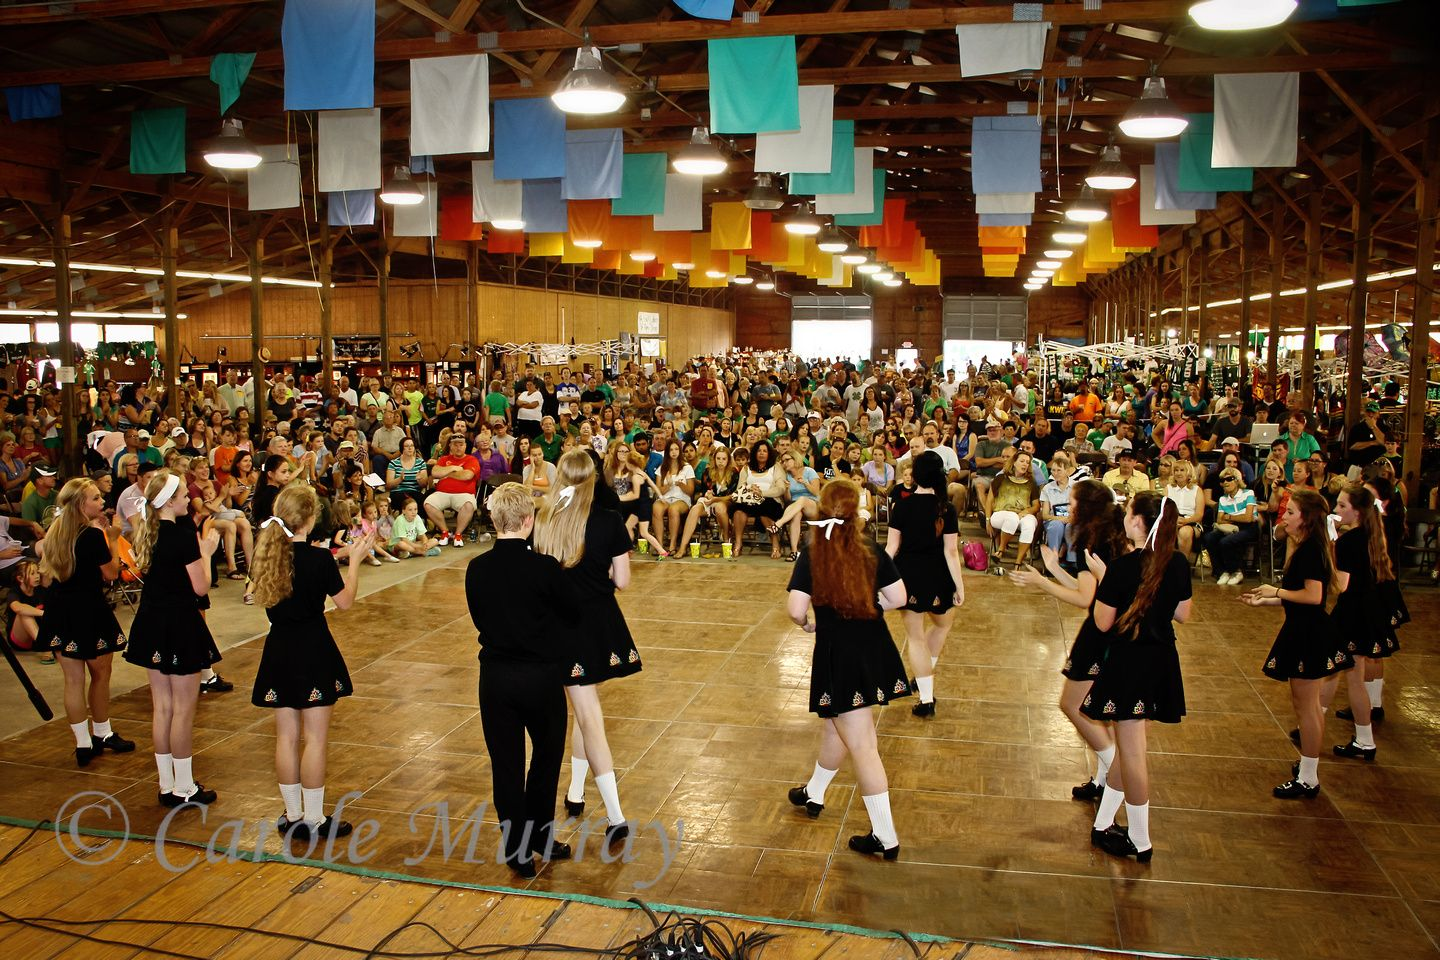 Cleveland Irish Cultural Festival 2014 Burke School Of Irish Dance Performing At The Cleveland Irish Cultural Festival 2014 Irish Dance Performance Festival